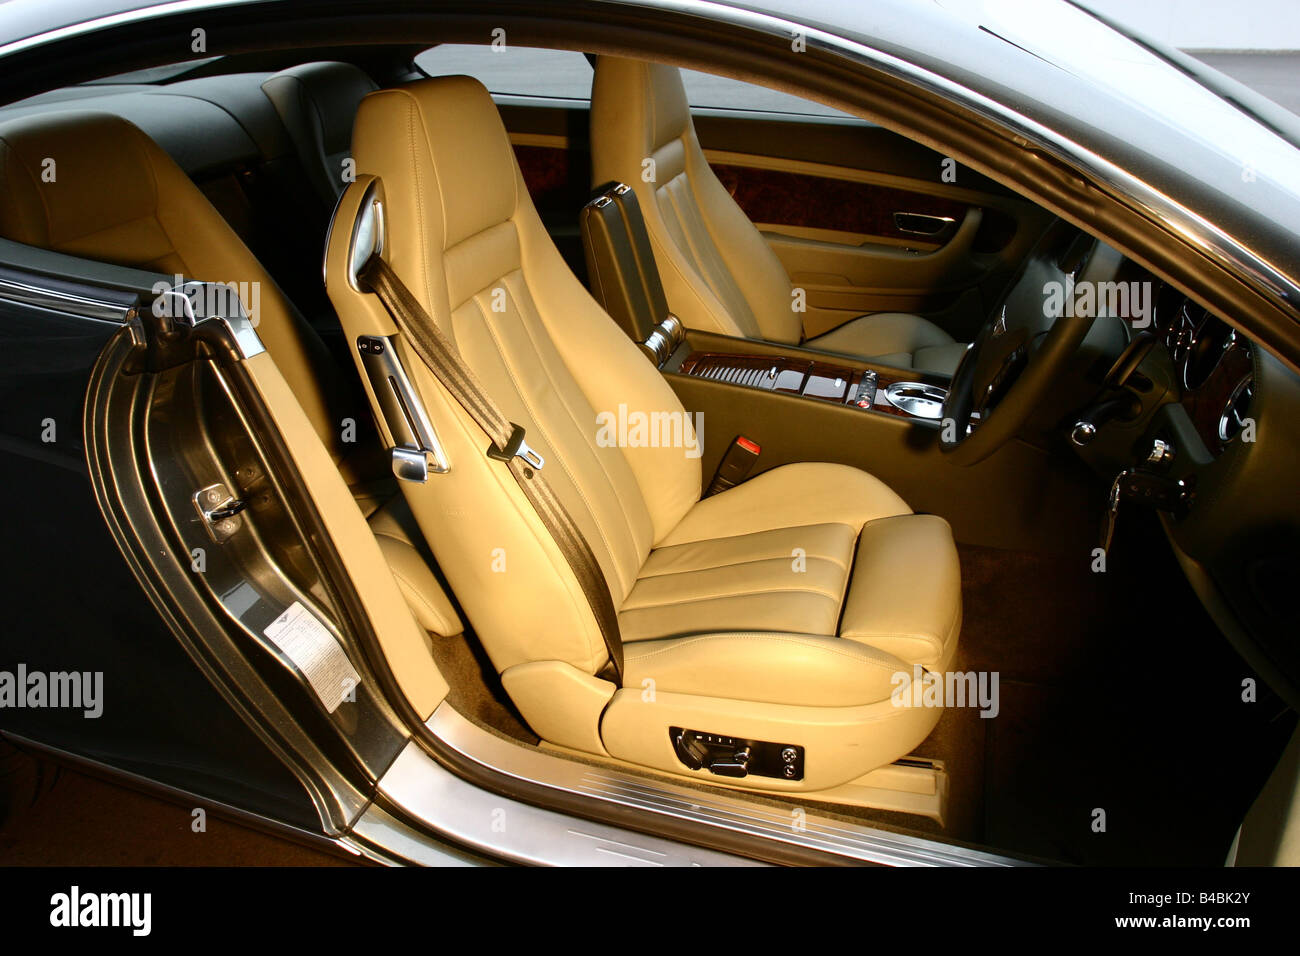 Car Bentley Continental Gt Model Year 2003 Luxury Approx S Stock Photo Alamy